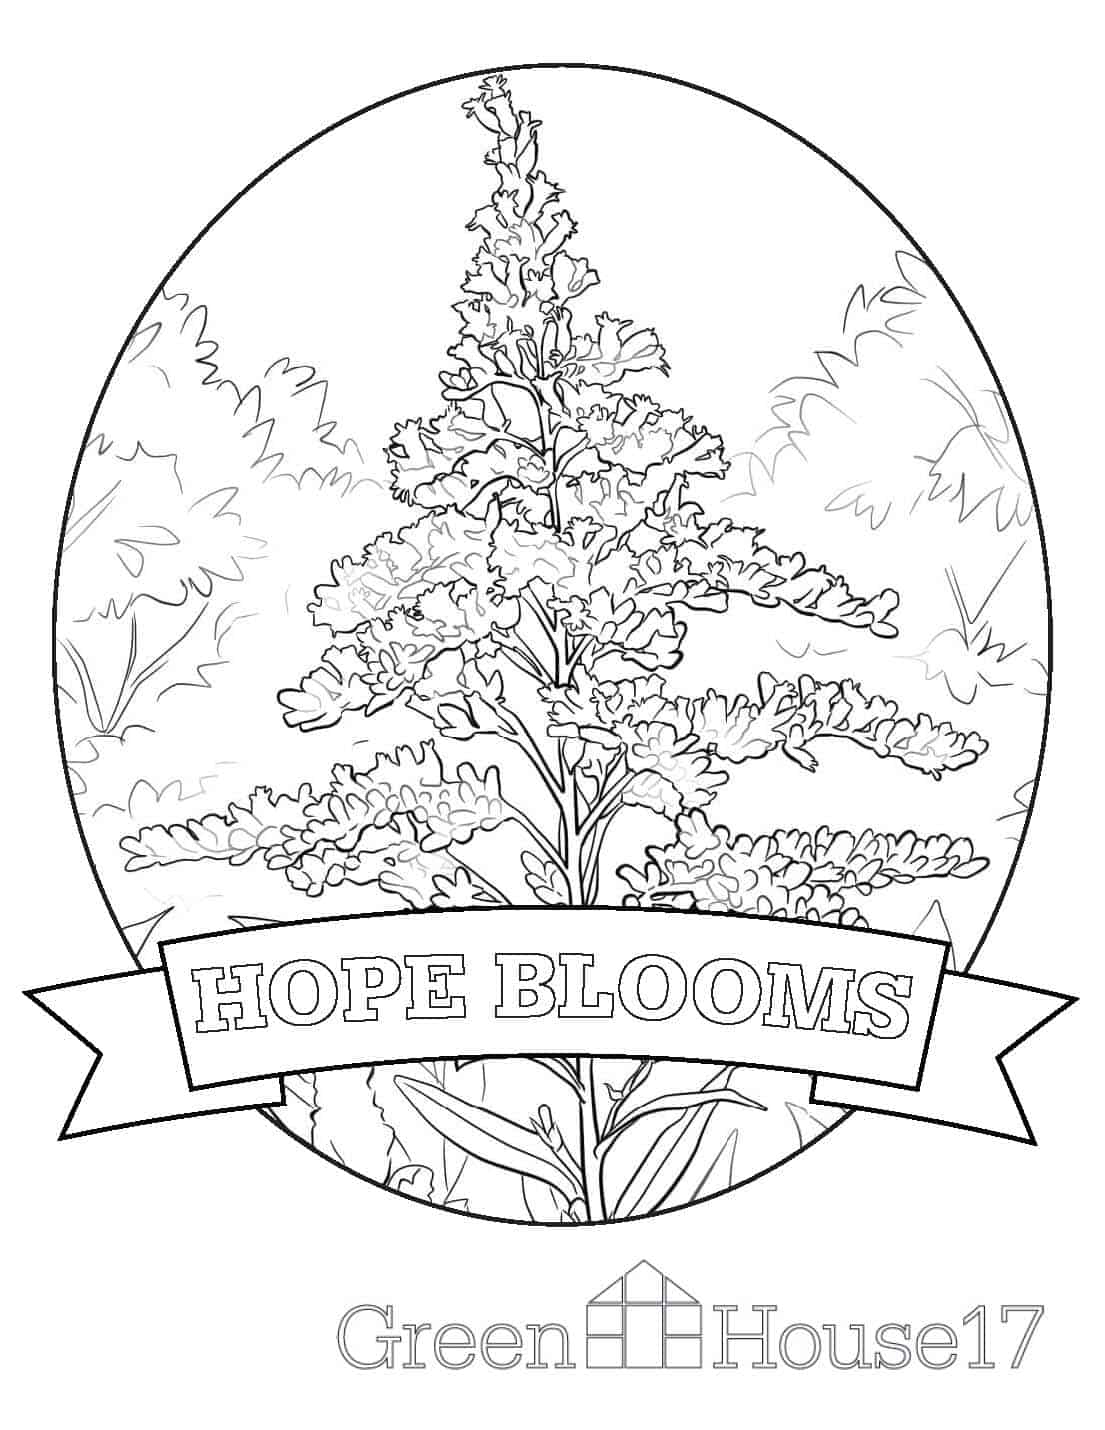 Coloring Pages GreenHouse17 Page 4 Hope Blooms